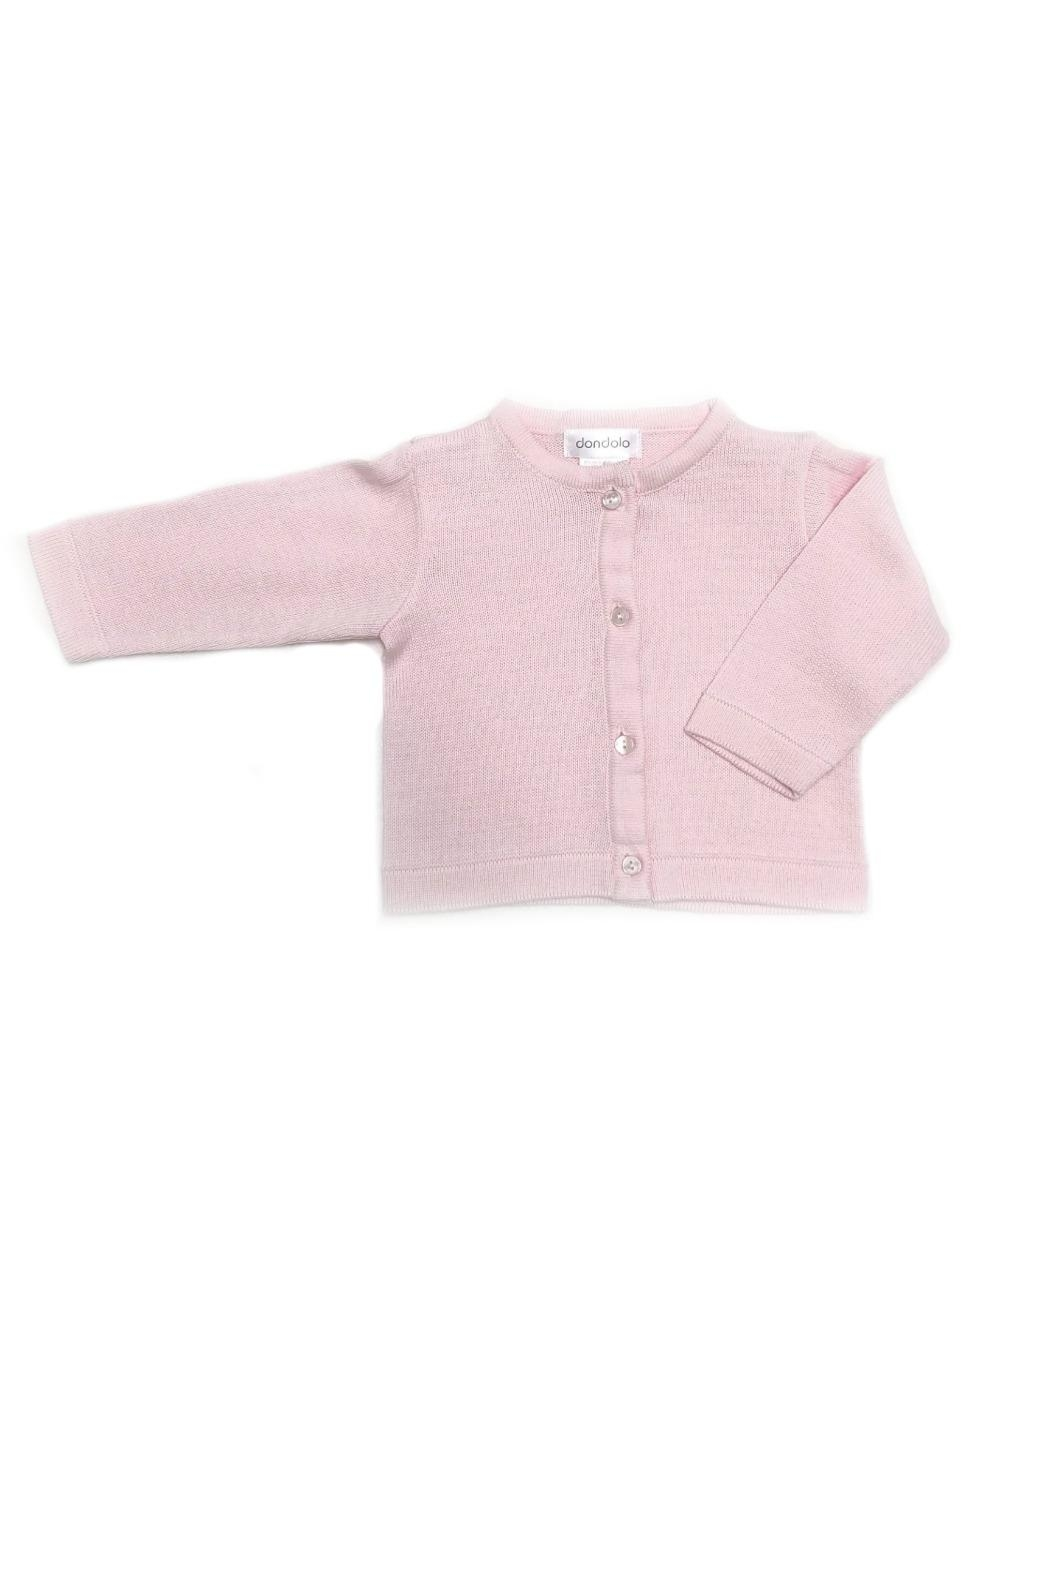 Dondolo Girls Pink Cardigan - Front Cropped Image